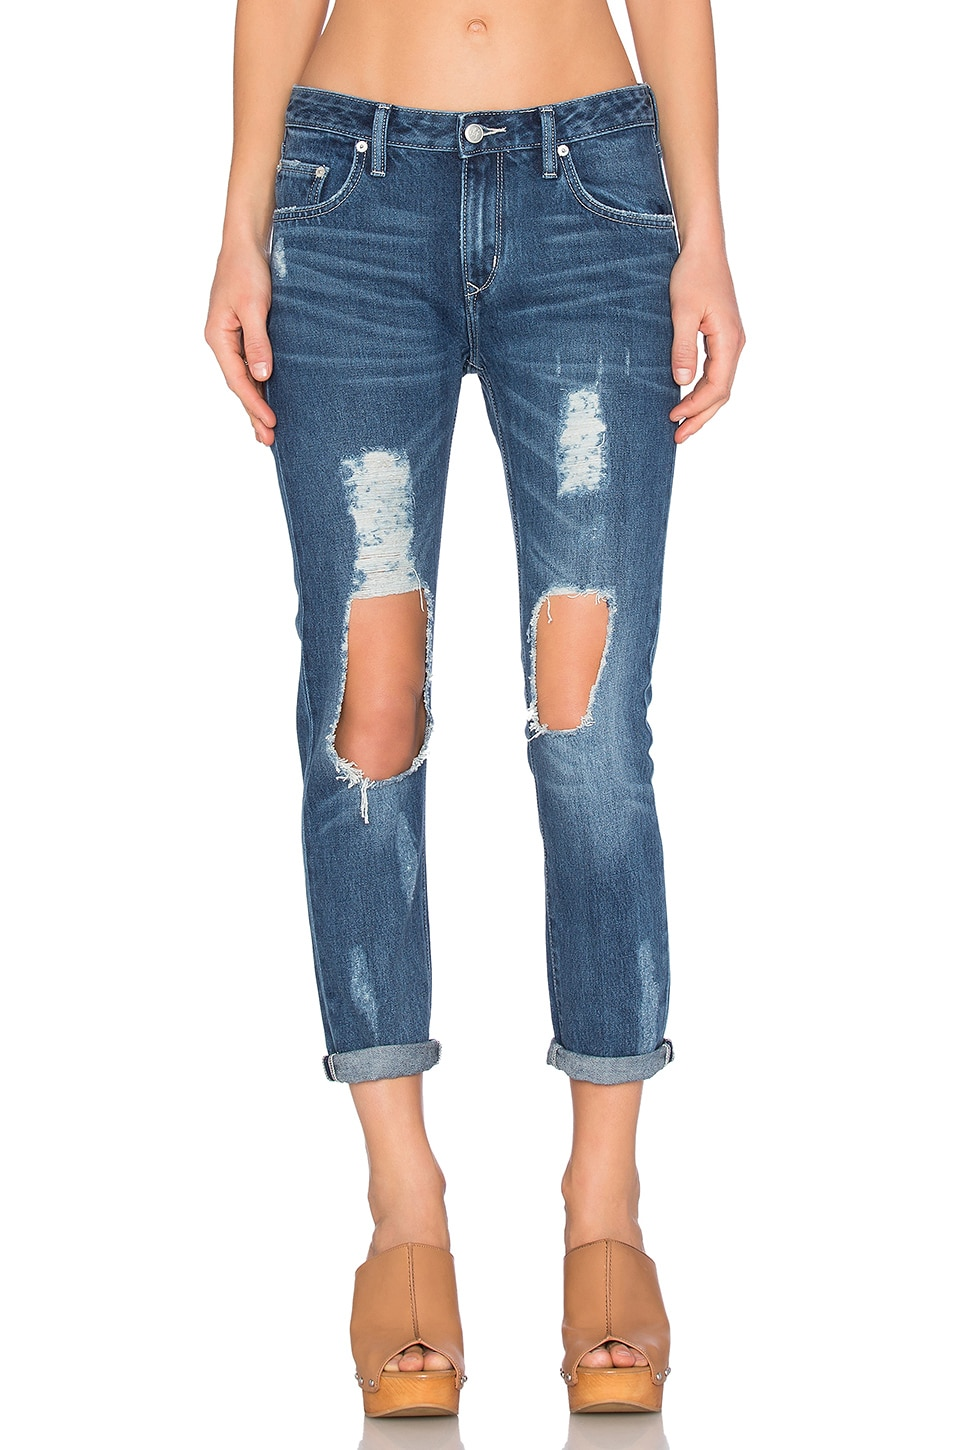 Lovers + Friends Ezra Distressed Jean in Lexington